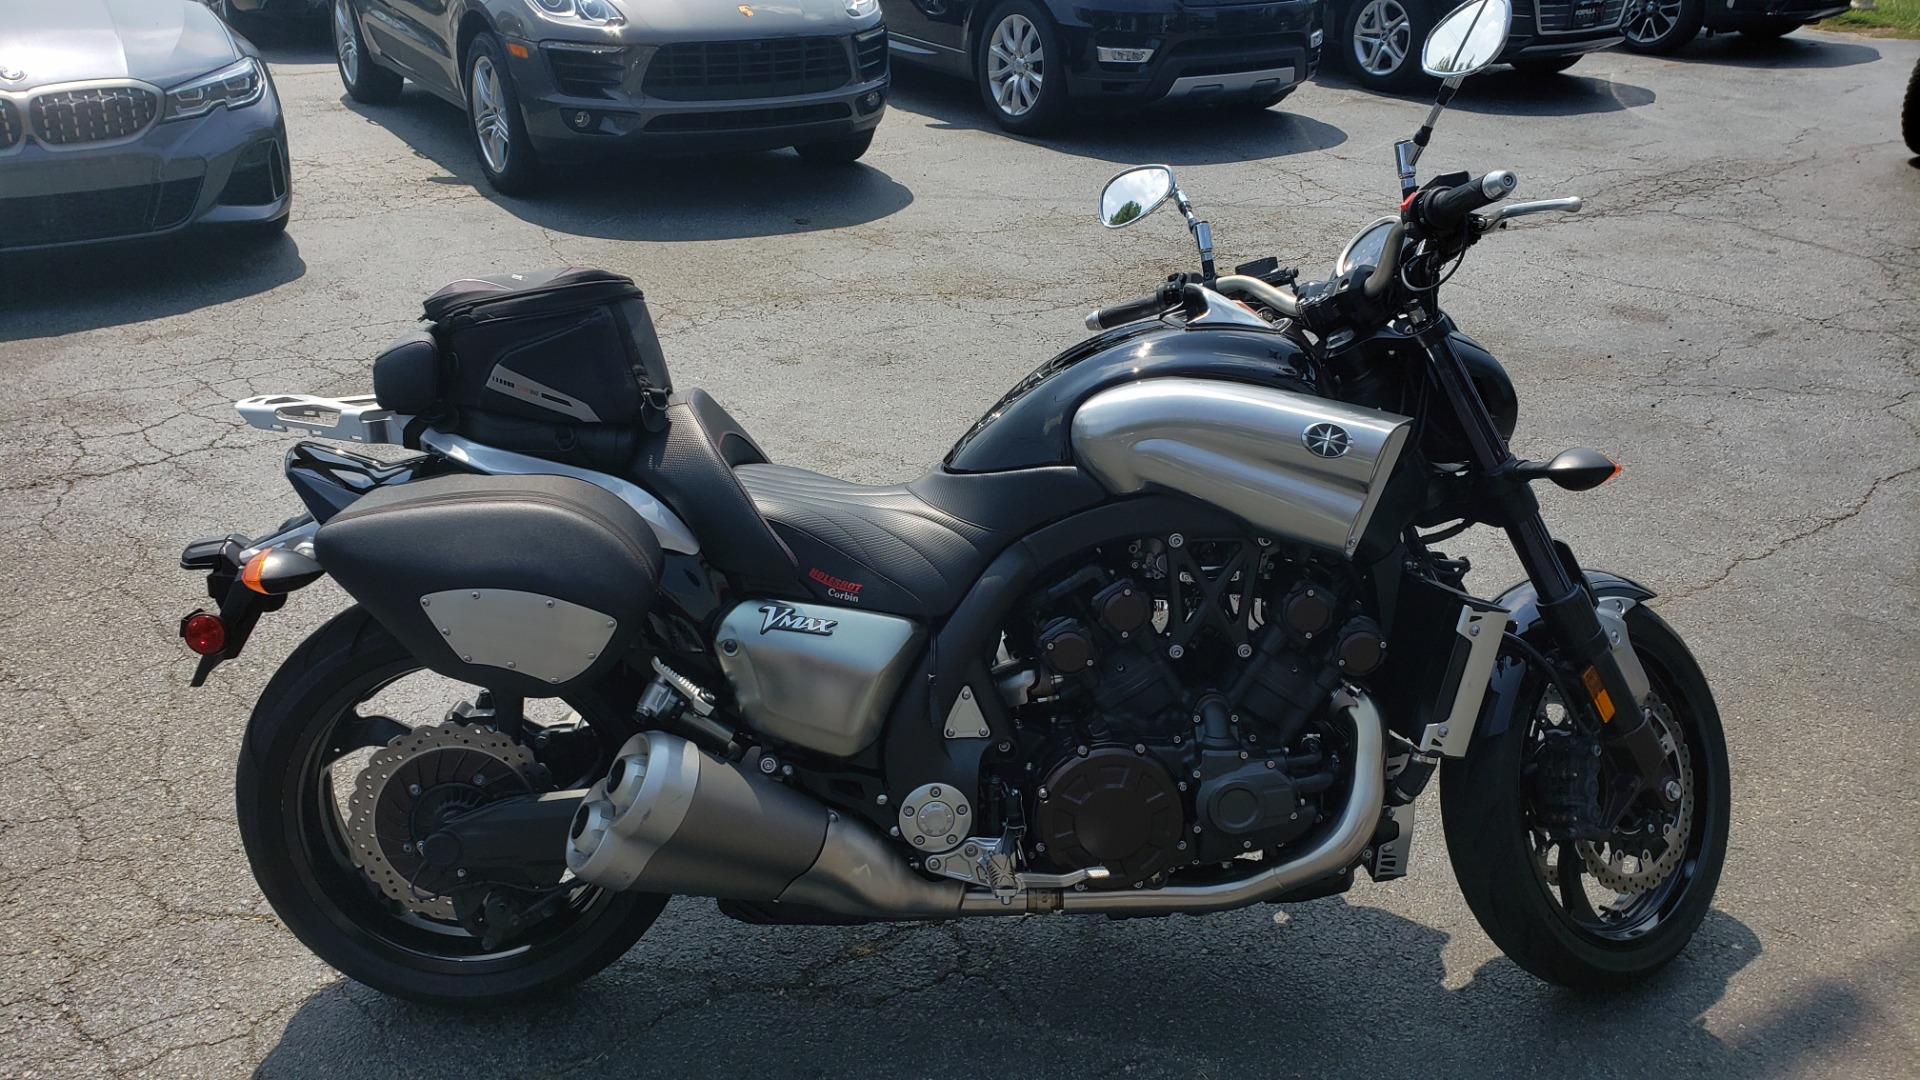 Used 2009 Yamaha V-MAX MOTORCYCLE / SPORT CRUISER / 18K MILES / SUPER CLEAN! for sale $9,500 at Formula Imports in Charlotte NC 28227 3